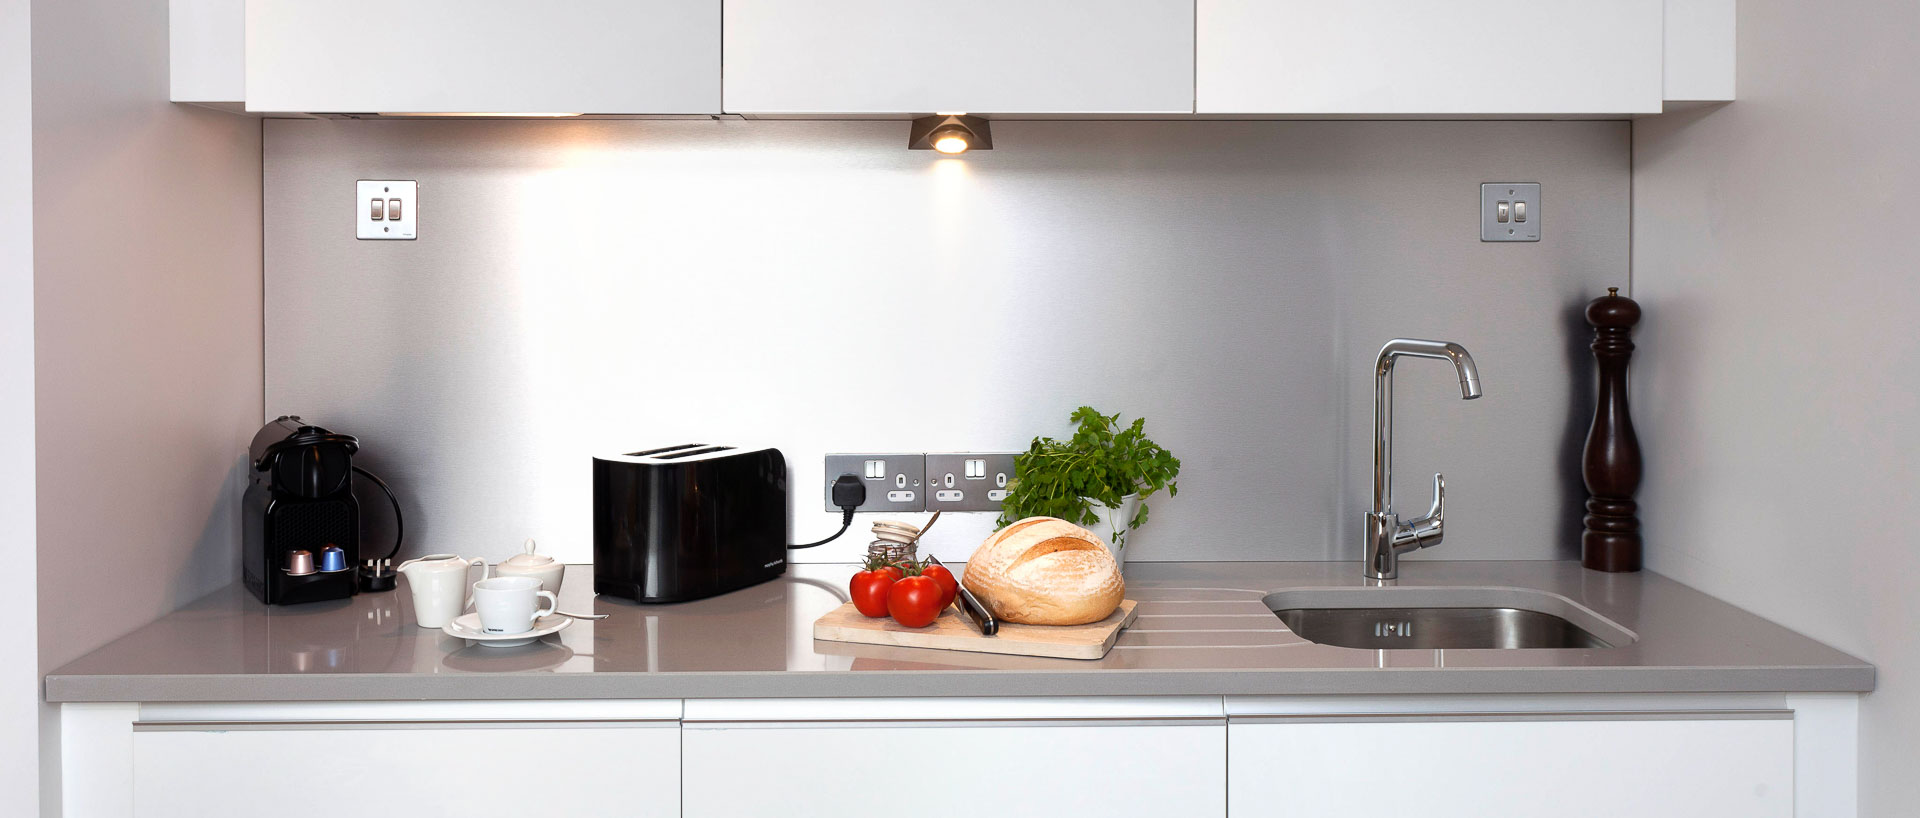 Modern fully equipped kitchen in PREMIER SUITES Dublin Ballsbridge serviced apartments